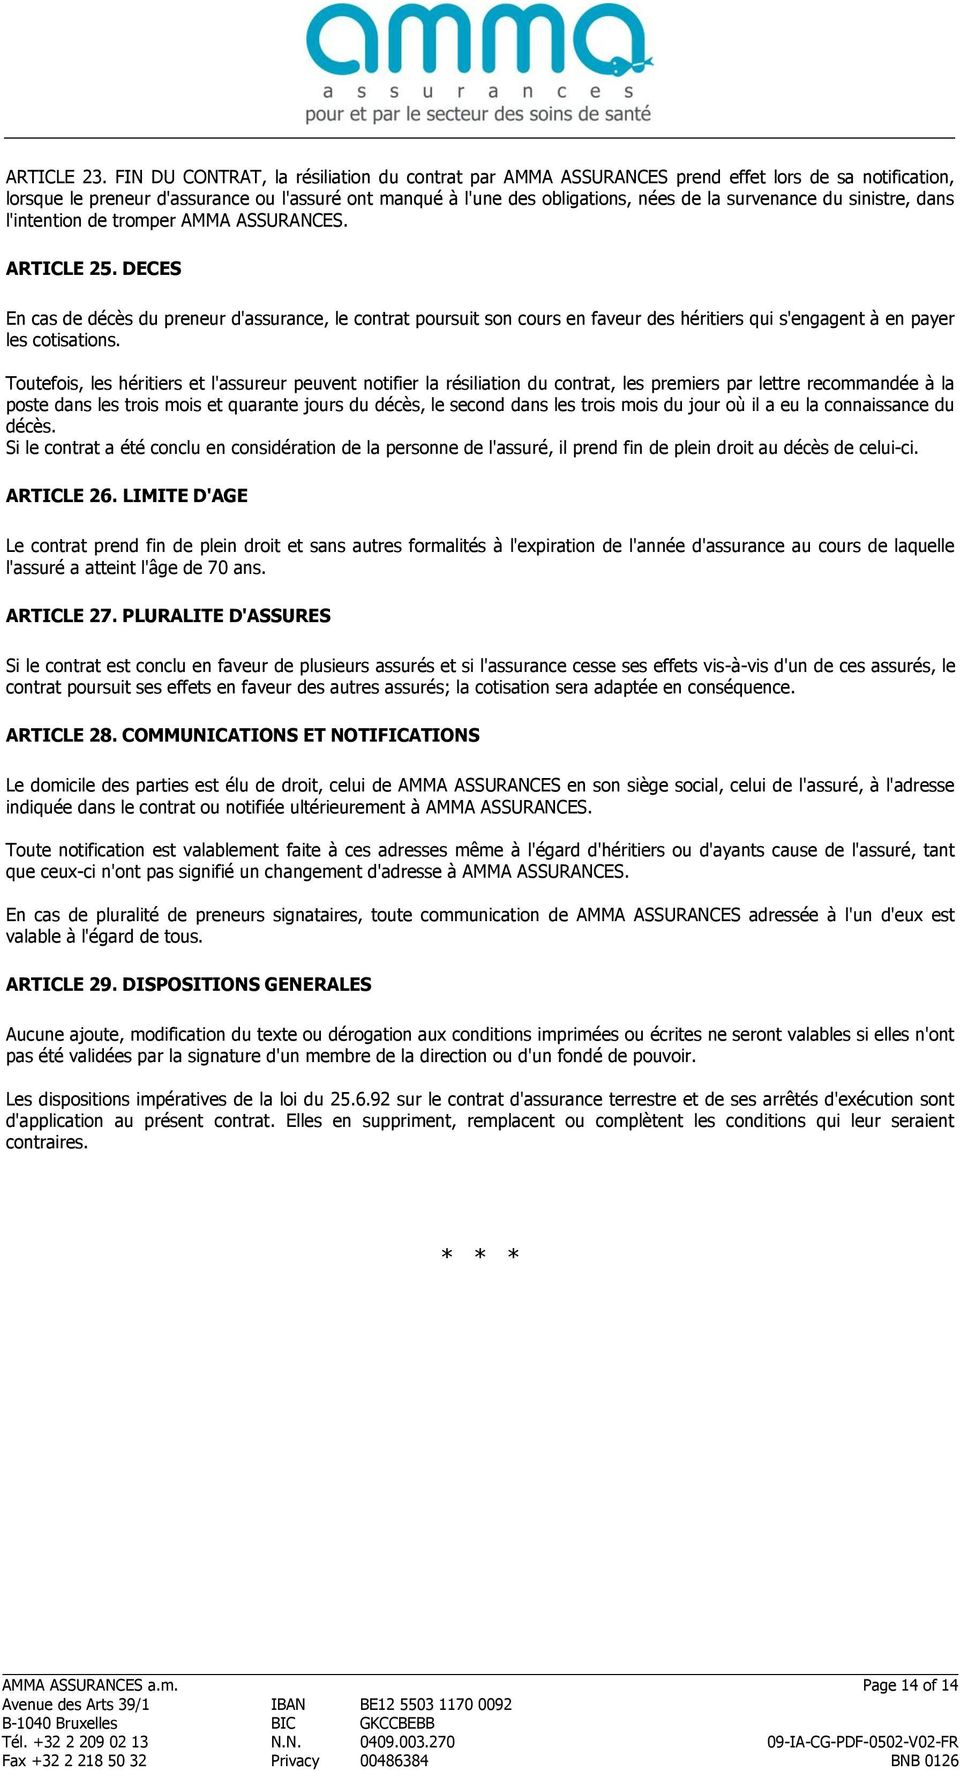 du sinistre, dans l'intention de tromper AMMA ASSURANCES. ARTICLE 25.